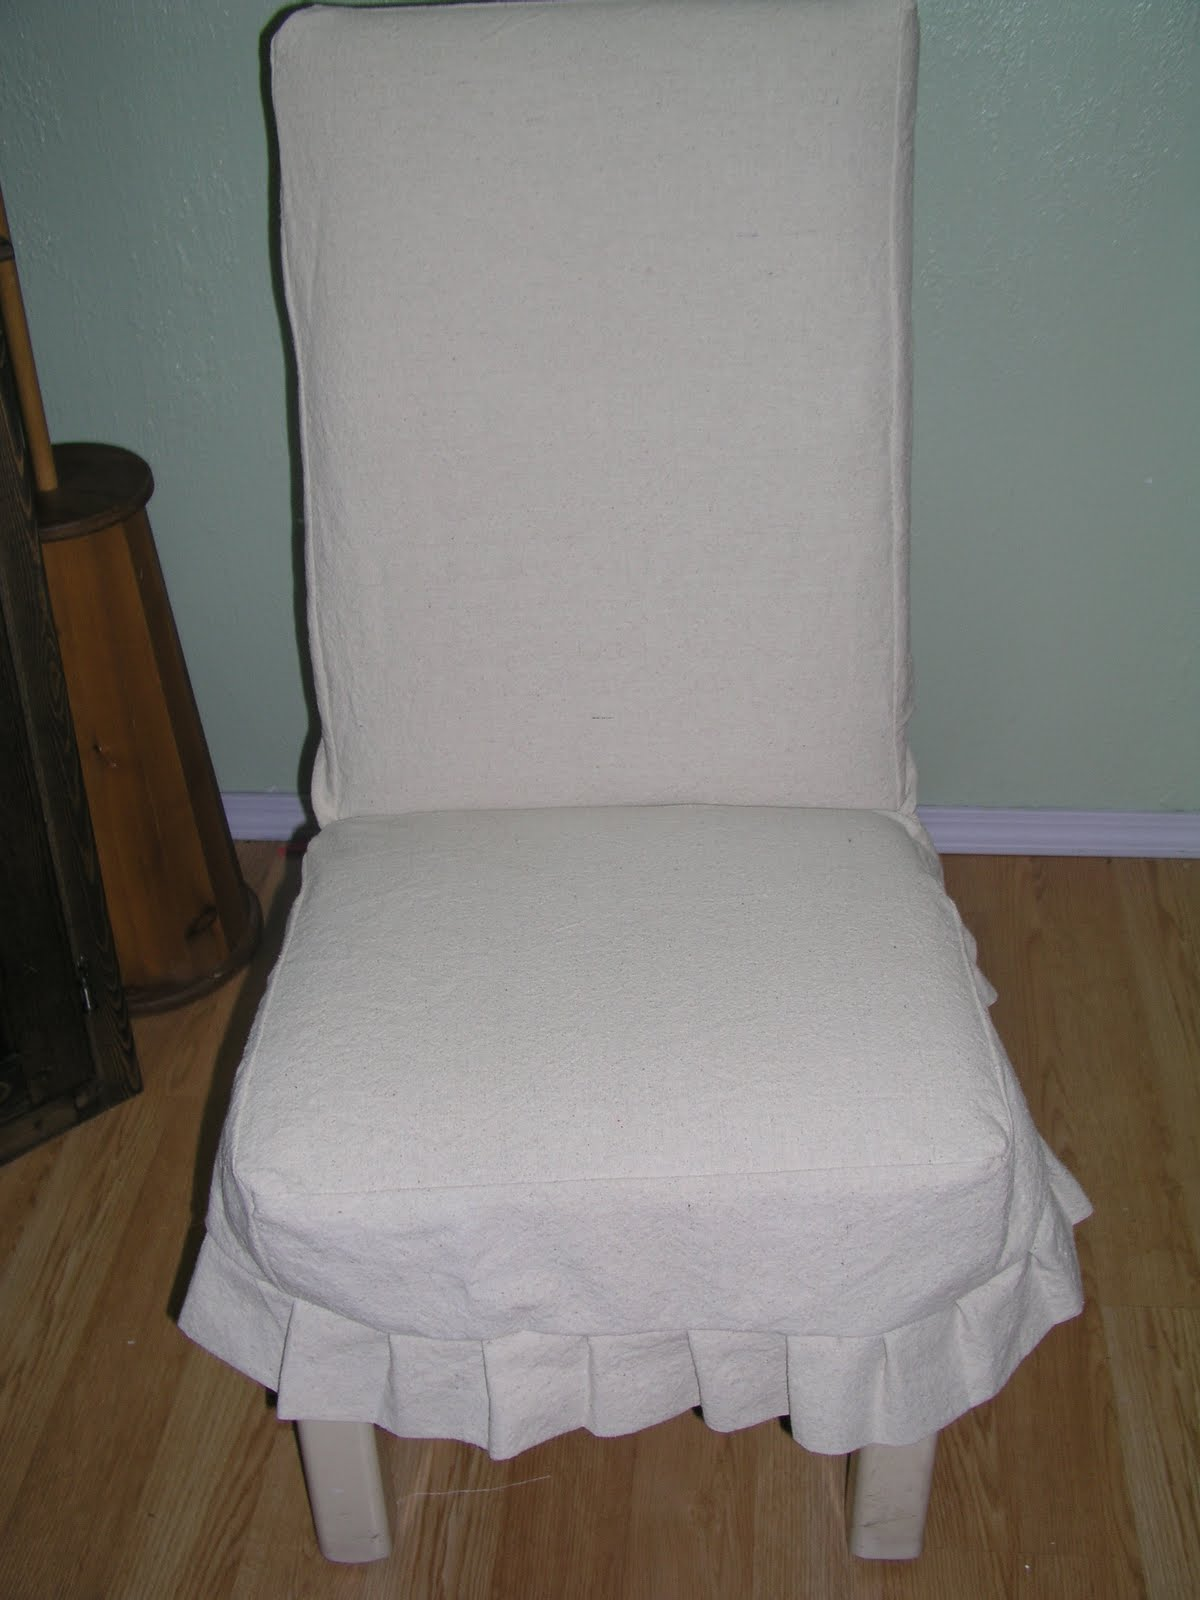 The Copper Tree Home DIY Dining Chair Slipcover